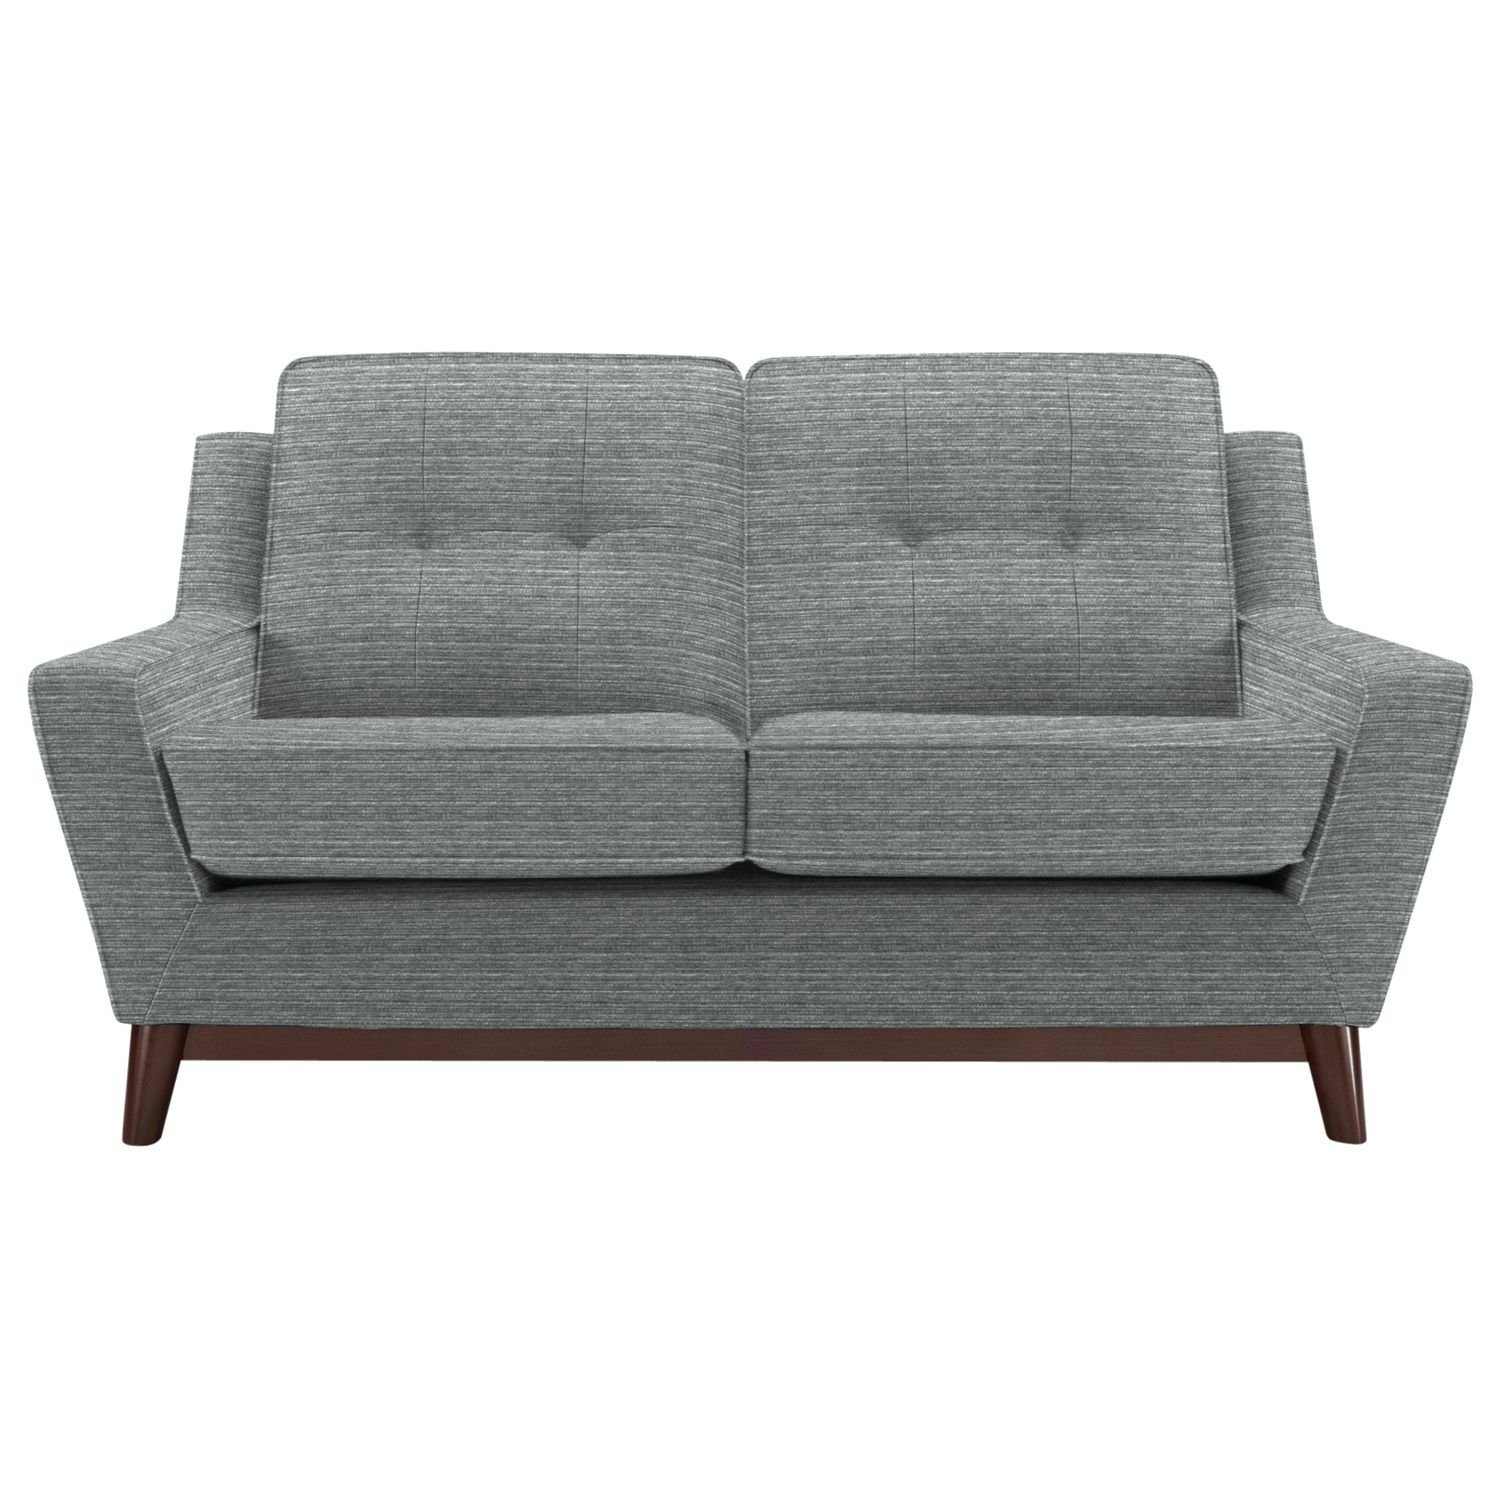 G Plan Vintage The Fifty Three Small Sofa, Streak Grey